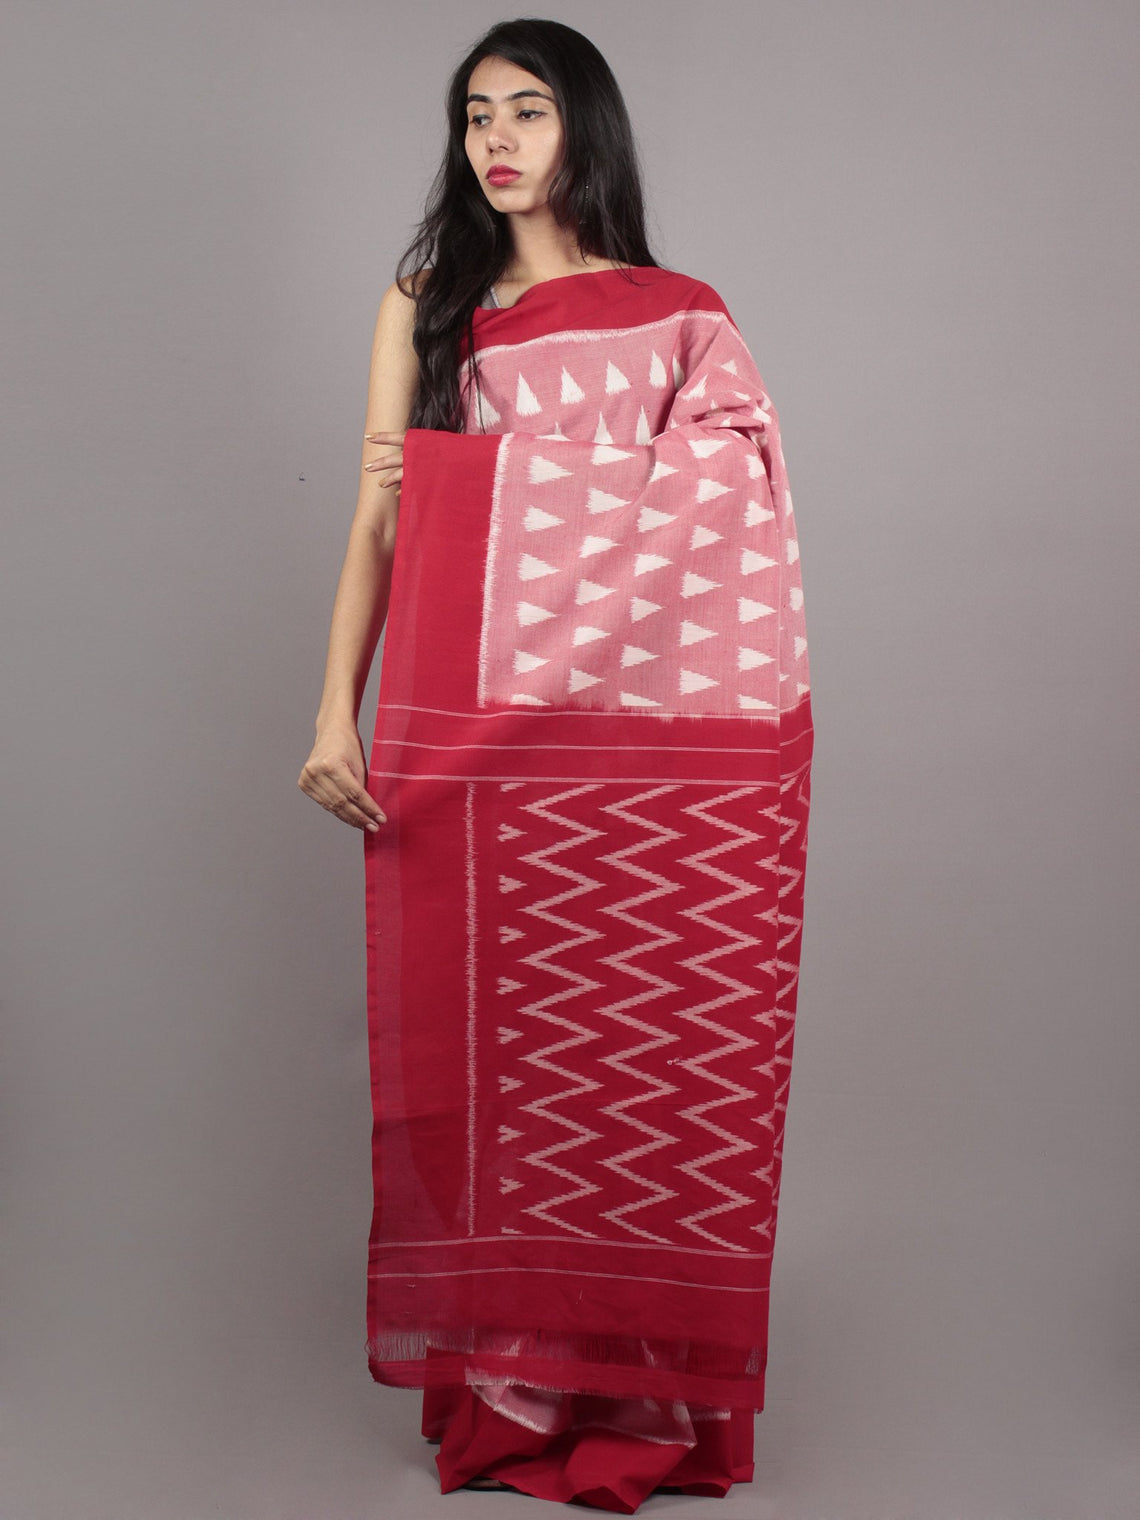 Red Maroon Ivory Ikat Handwoven Pochampally Mercerized Cotton Saree - S031701629